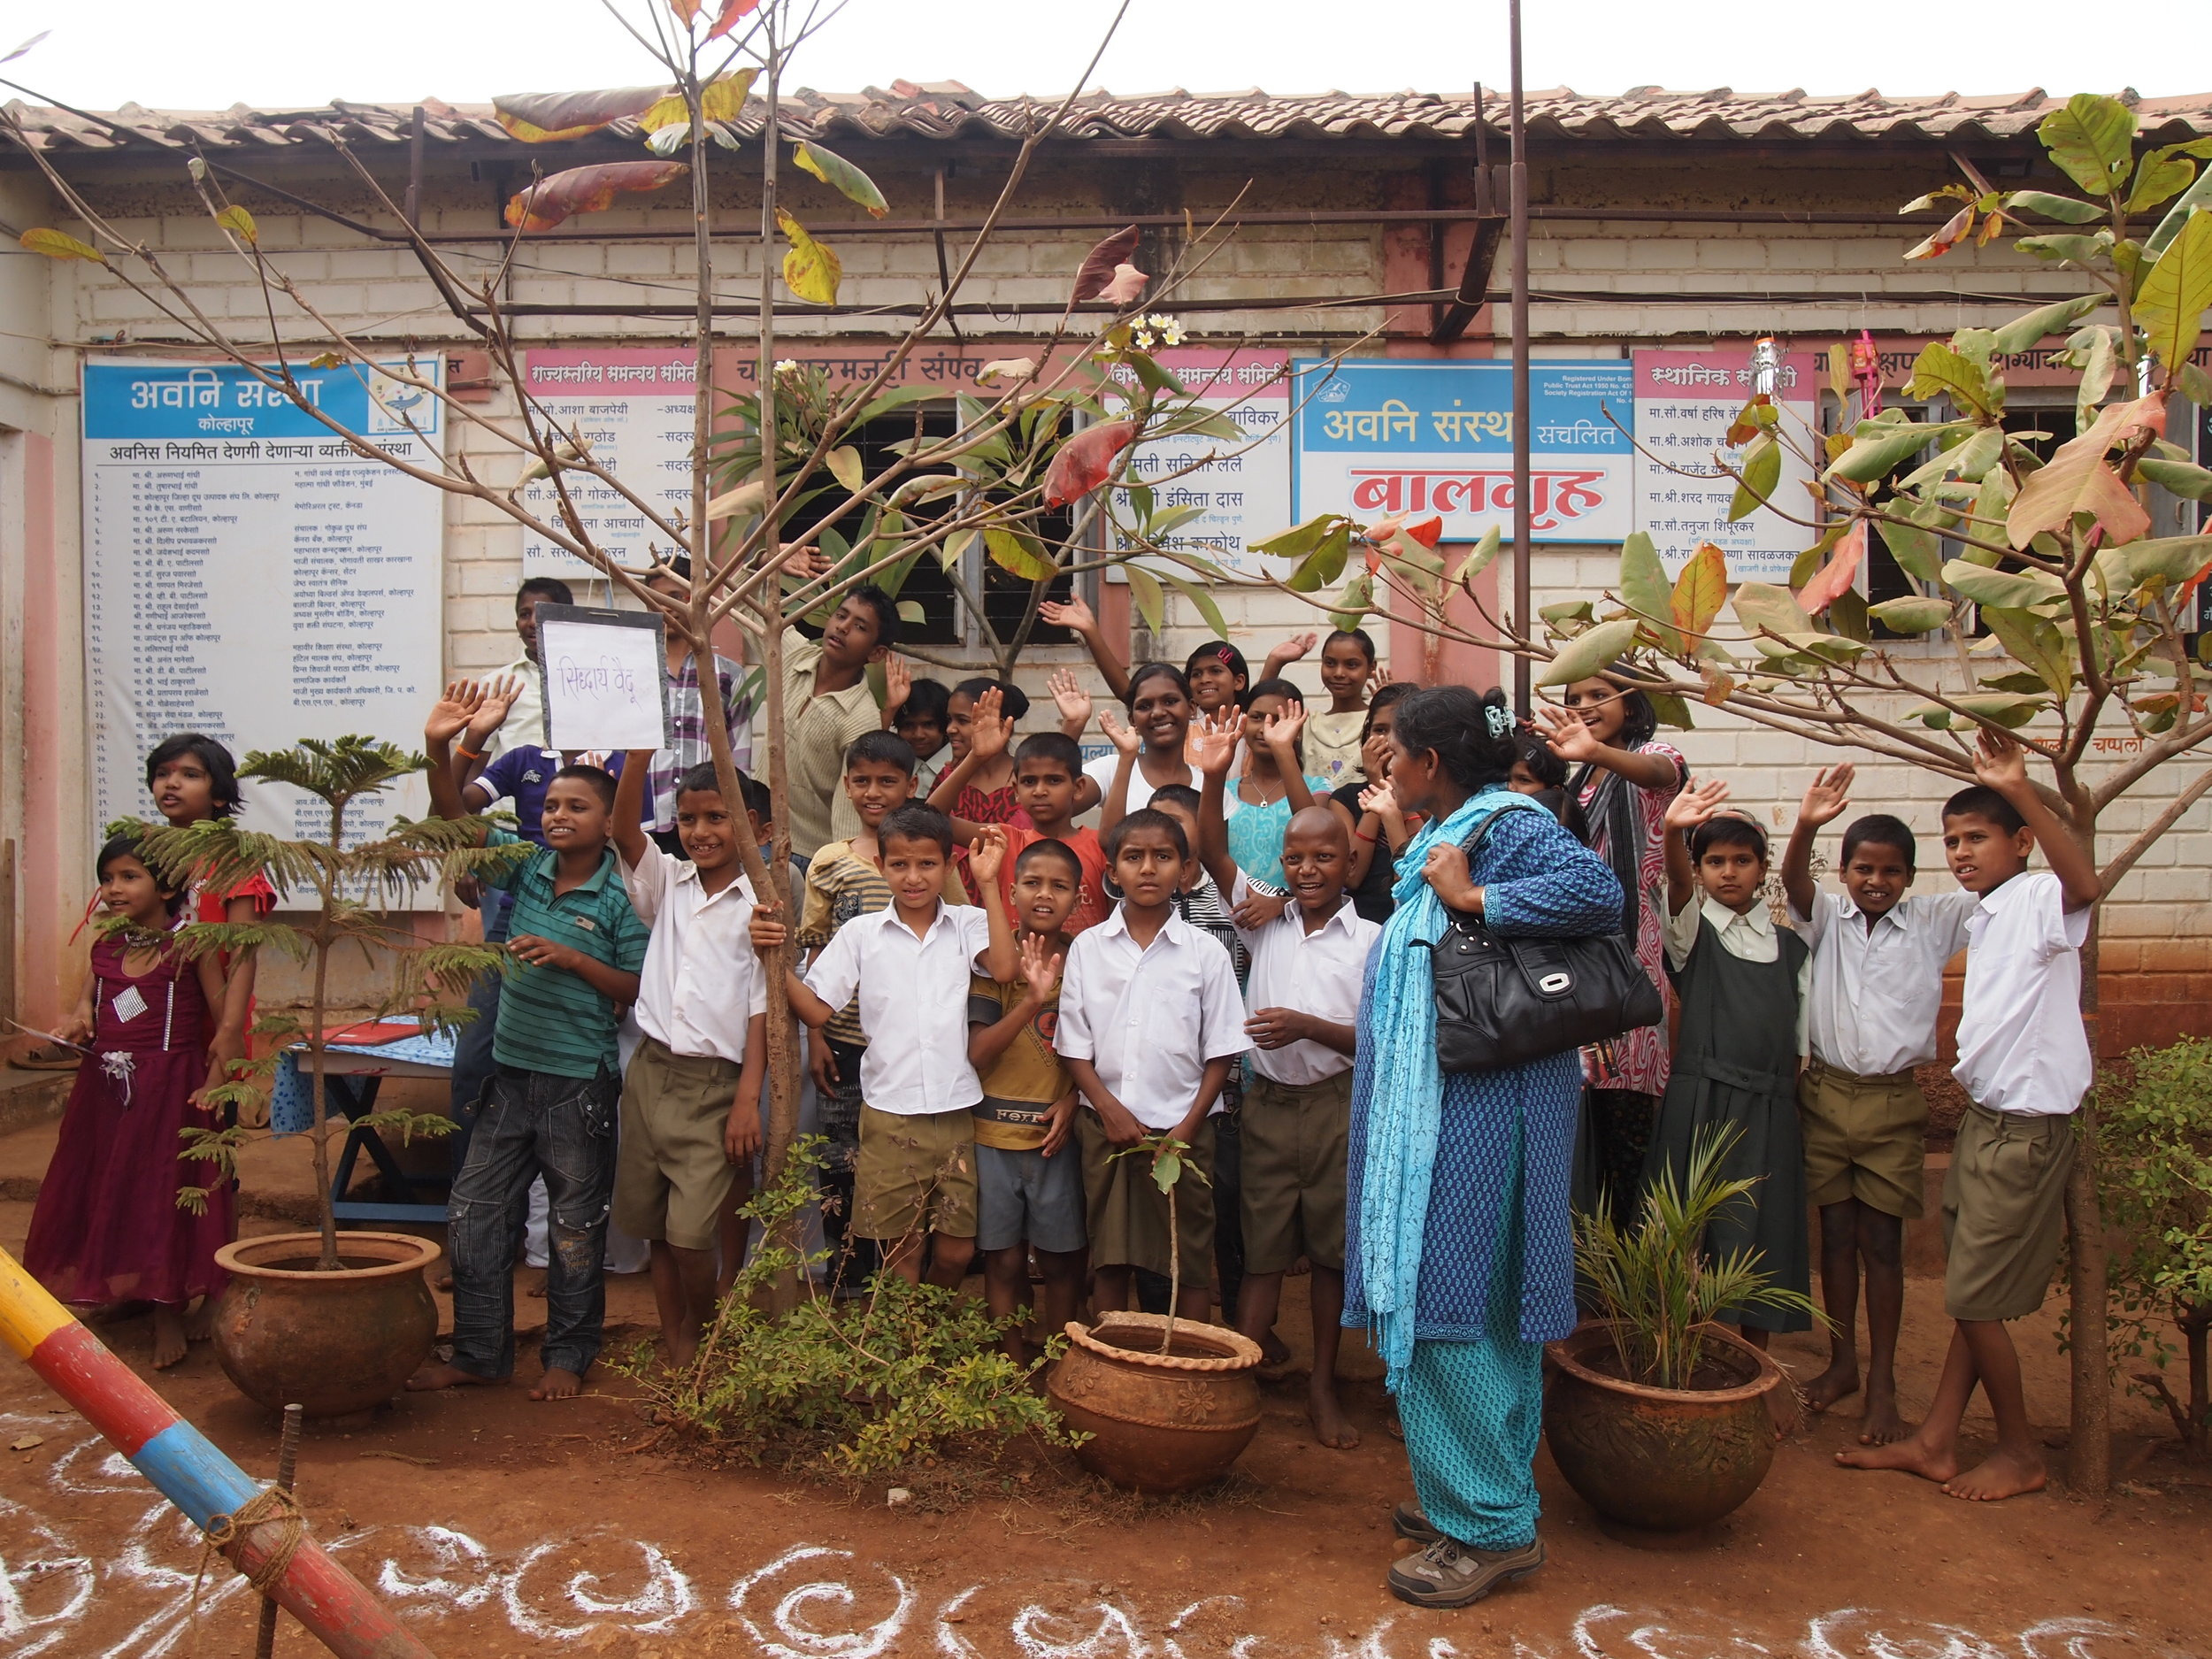 Providing Youth Safety and Education - AVANI School for Children, India